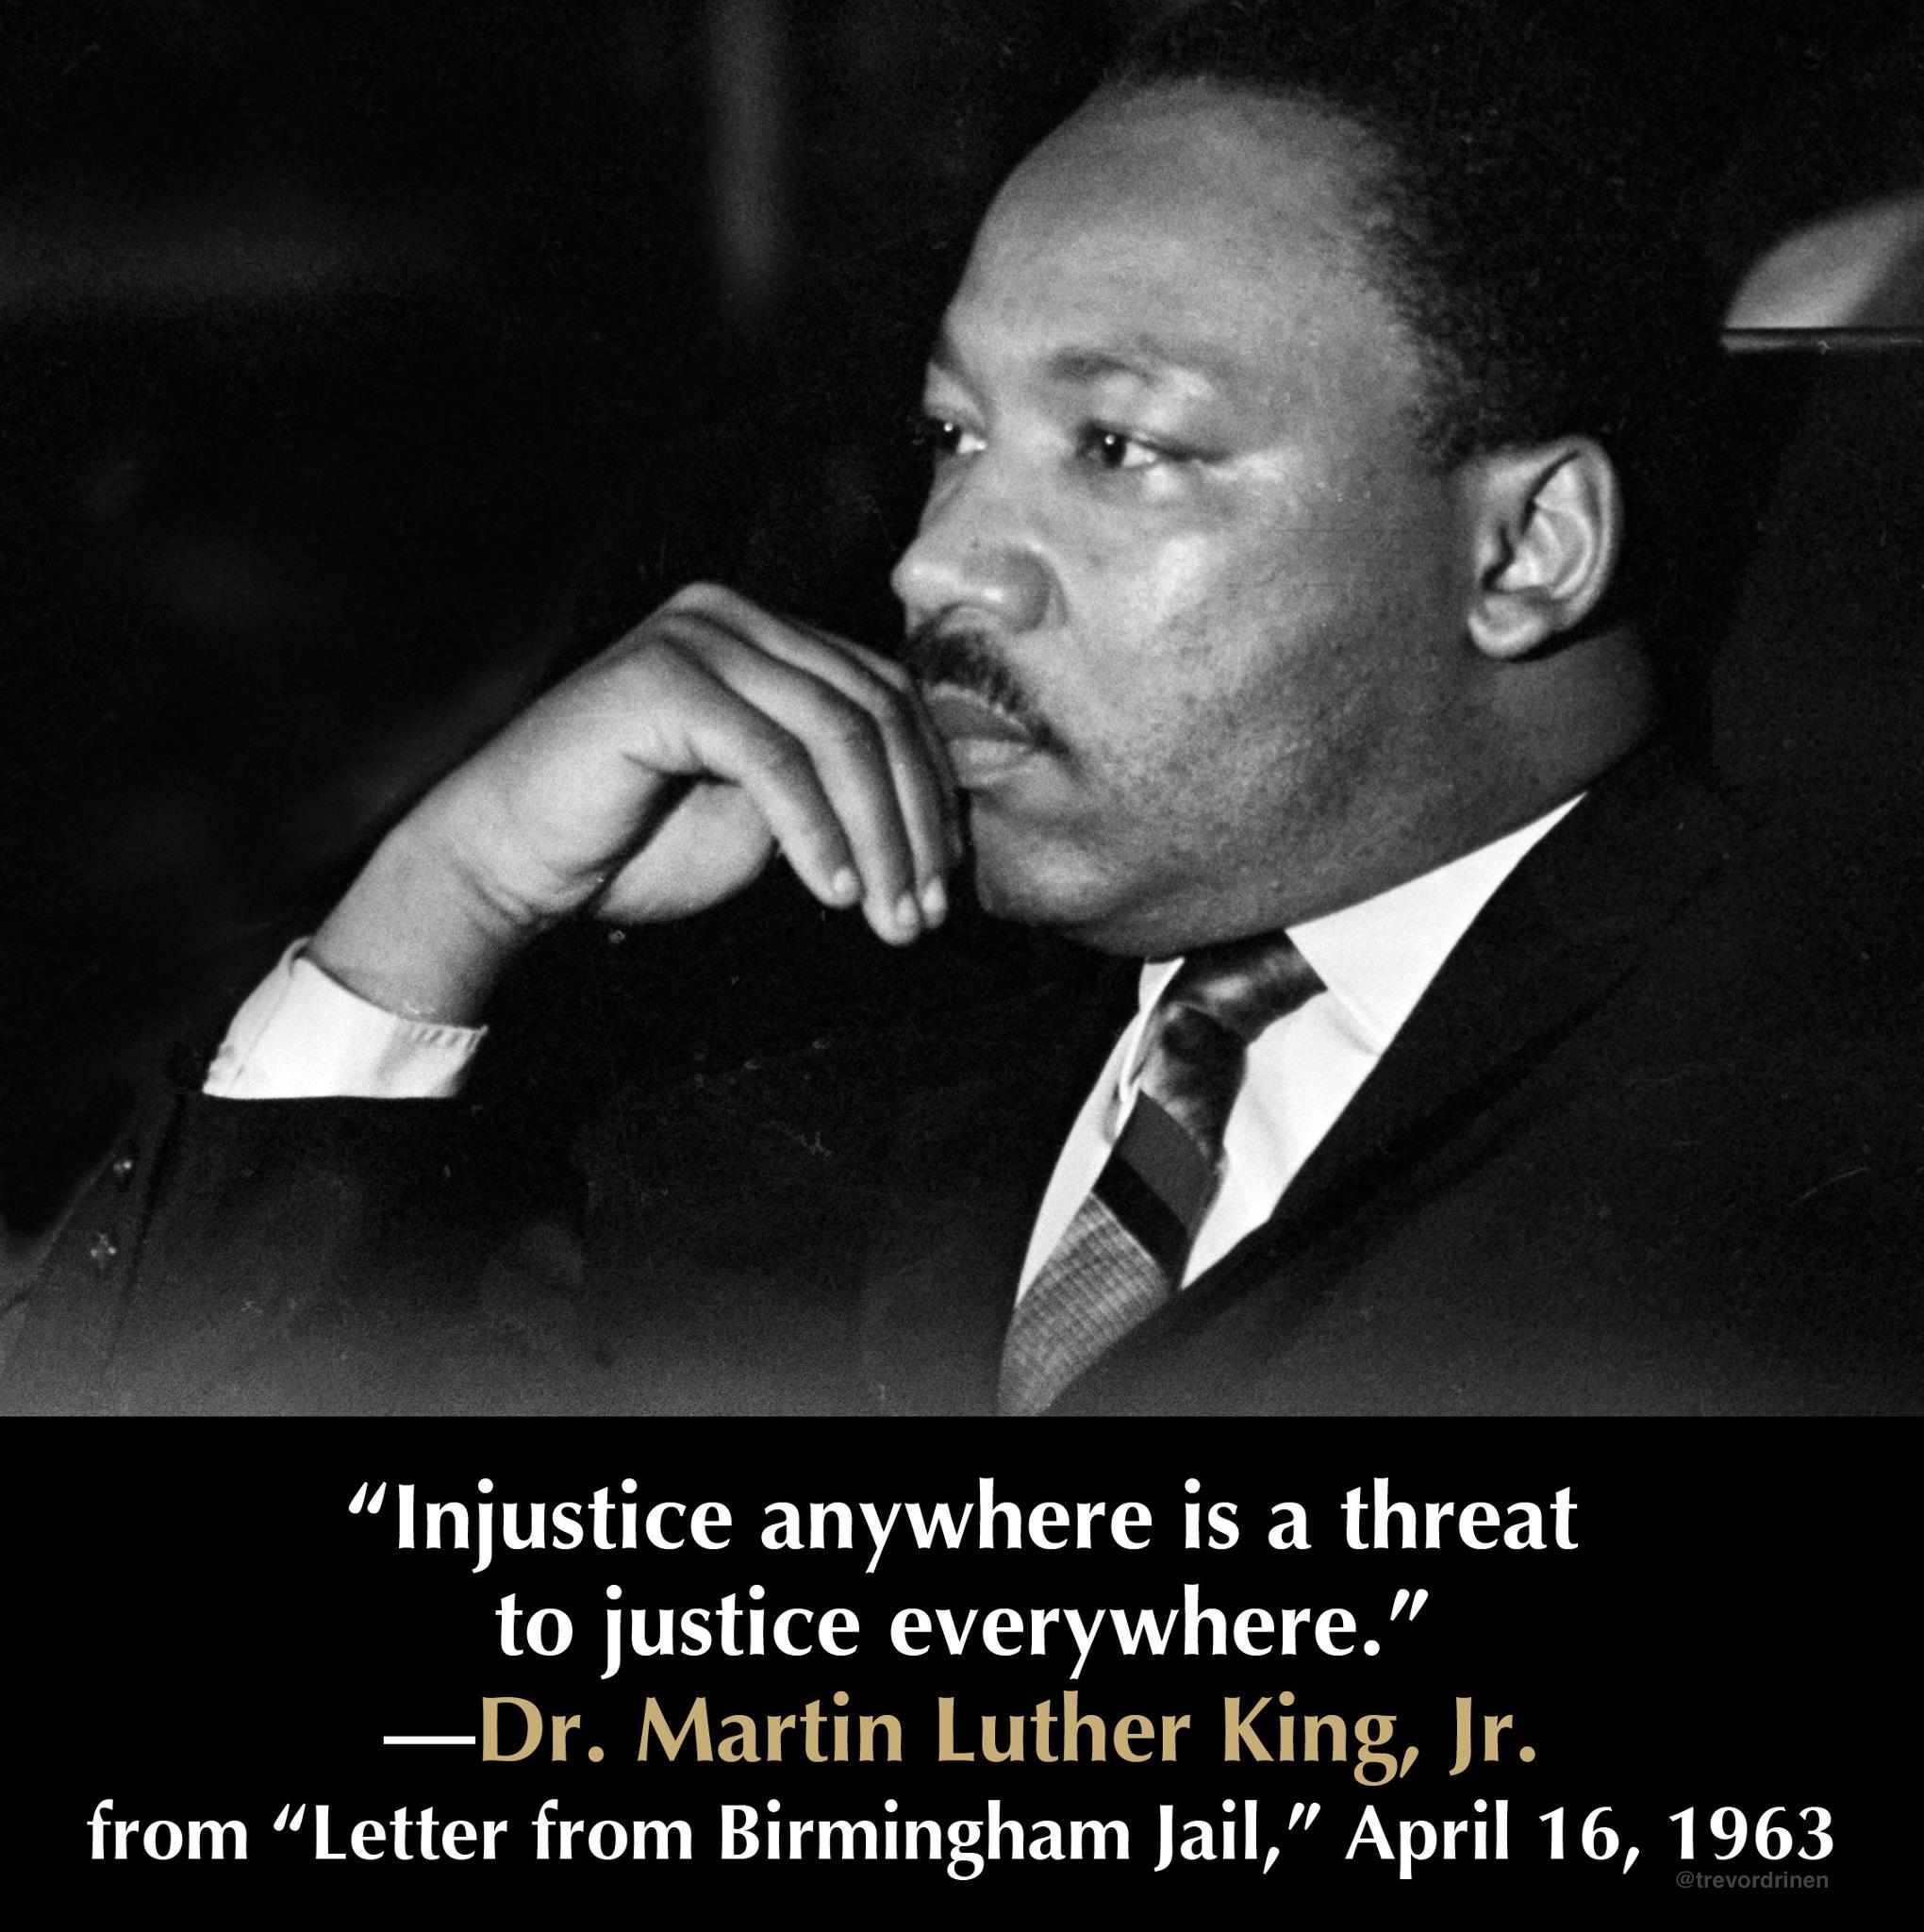 Dr King Quotes: Martin Luther King Jr. 9 Inspirational Wallpapers & 25